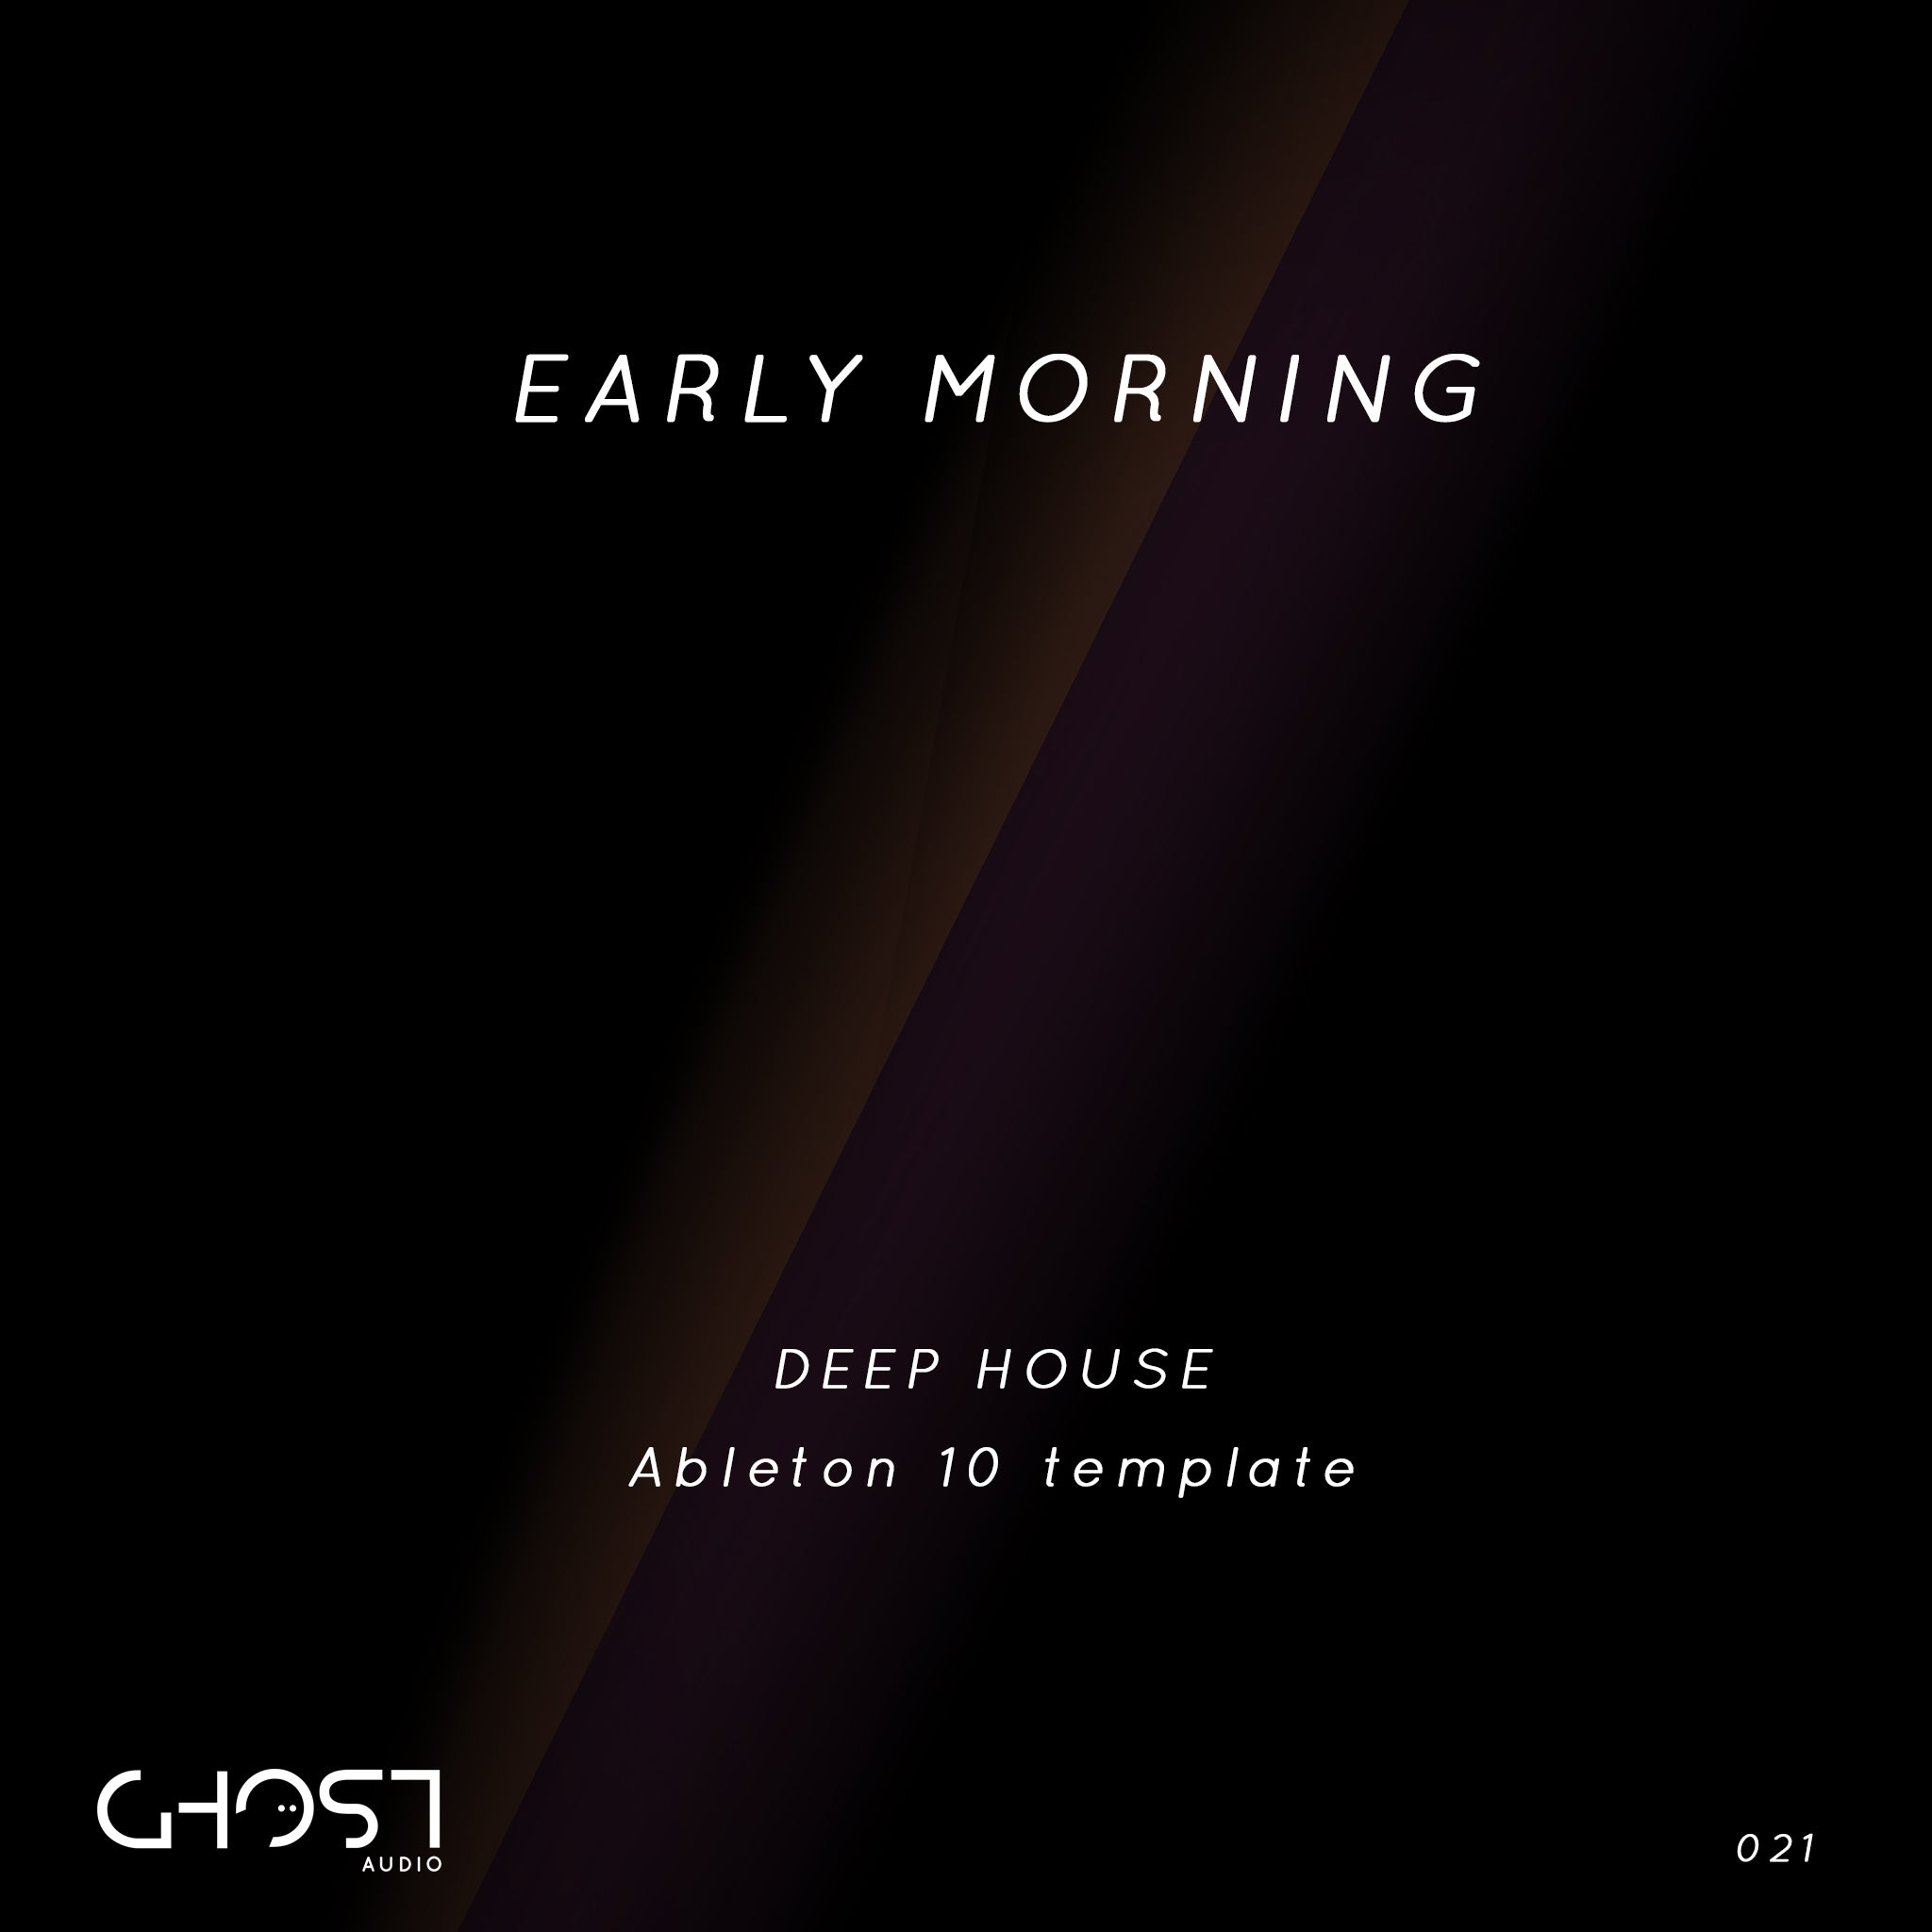 EARLY MORNING ( DEEP HOUSE / ABLETON 10 TEMPLATE )